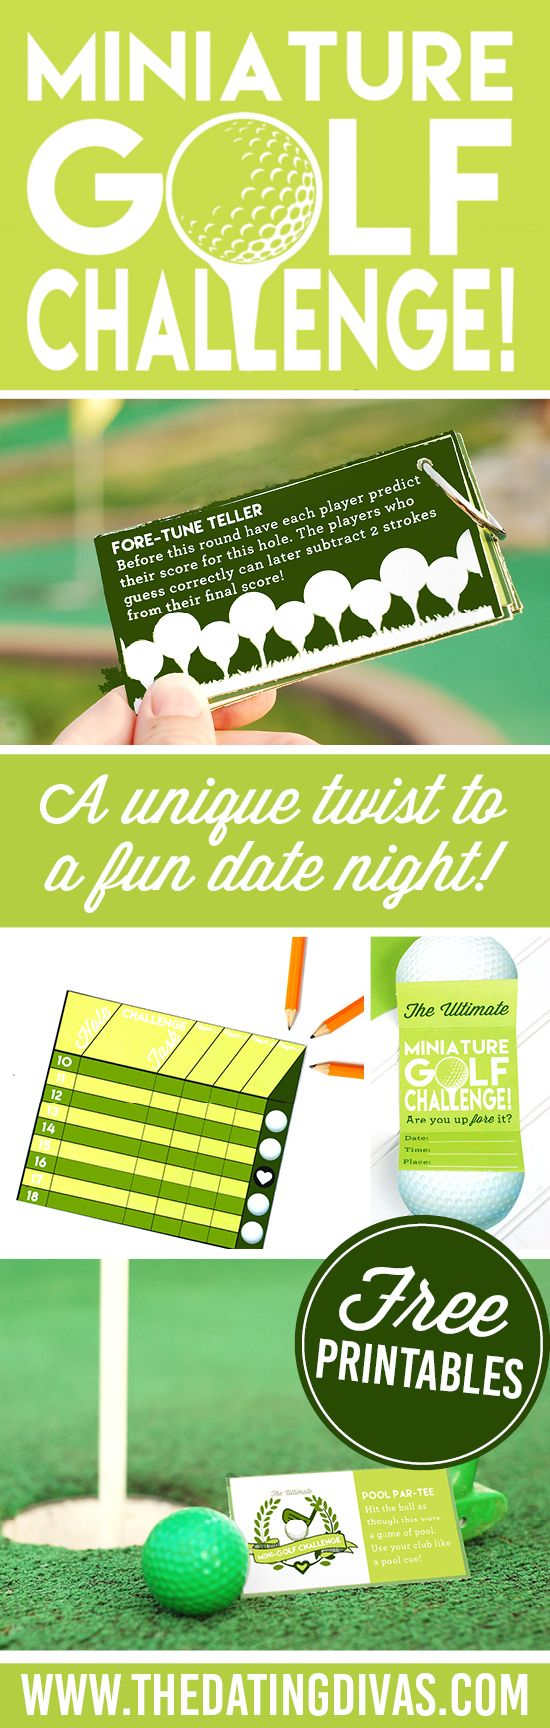 The Ultimate Mini Golf Date Night with fun ideas to make a night out even more special! Love these challenge ideas!